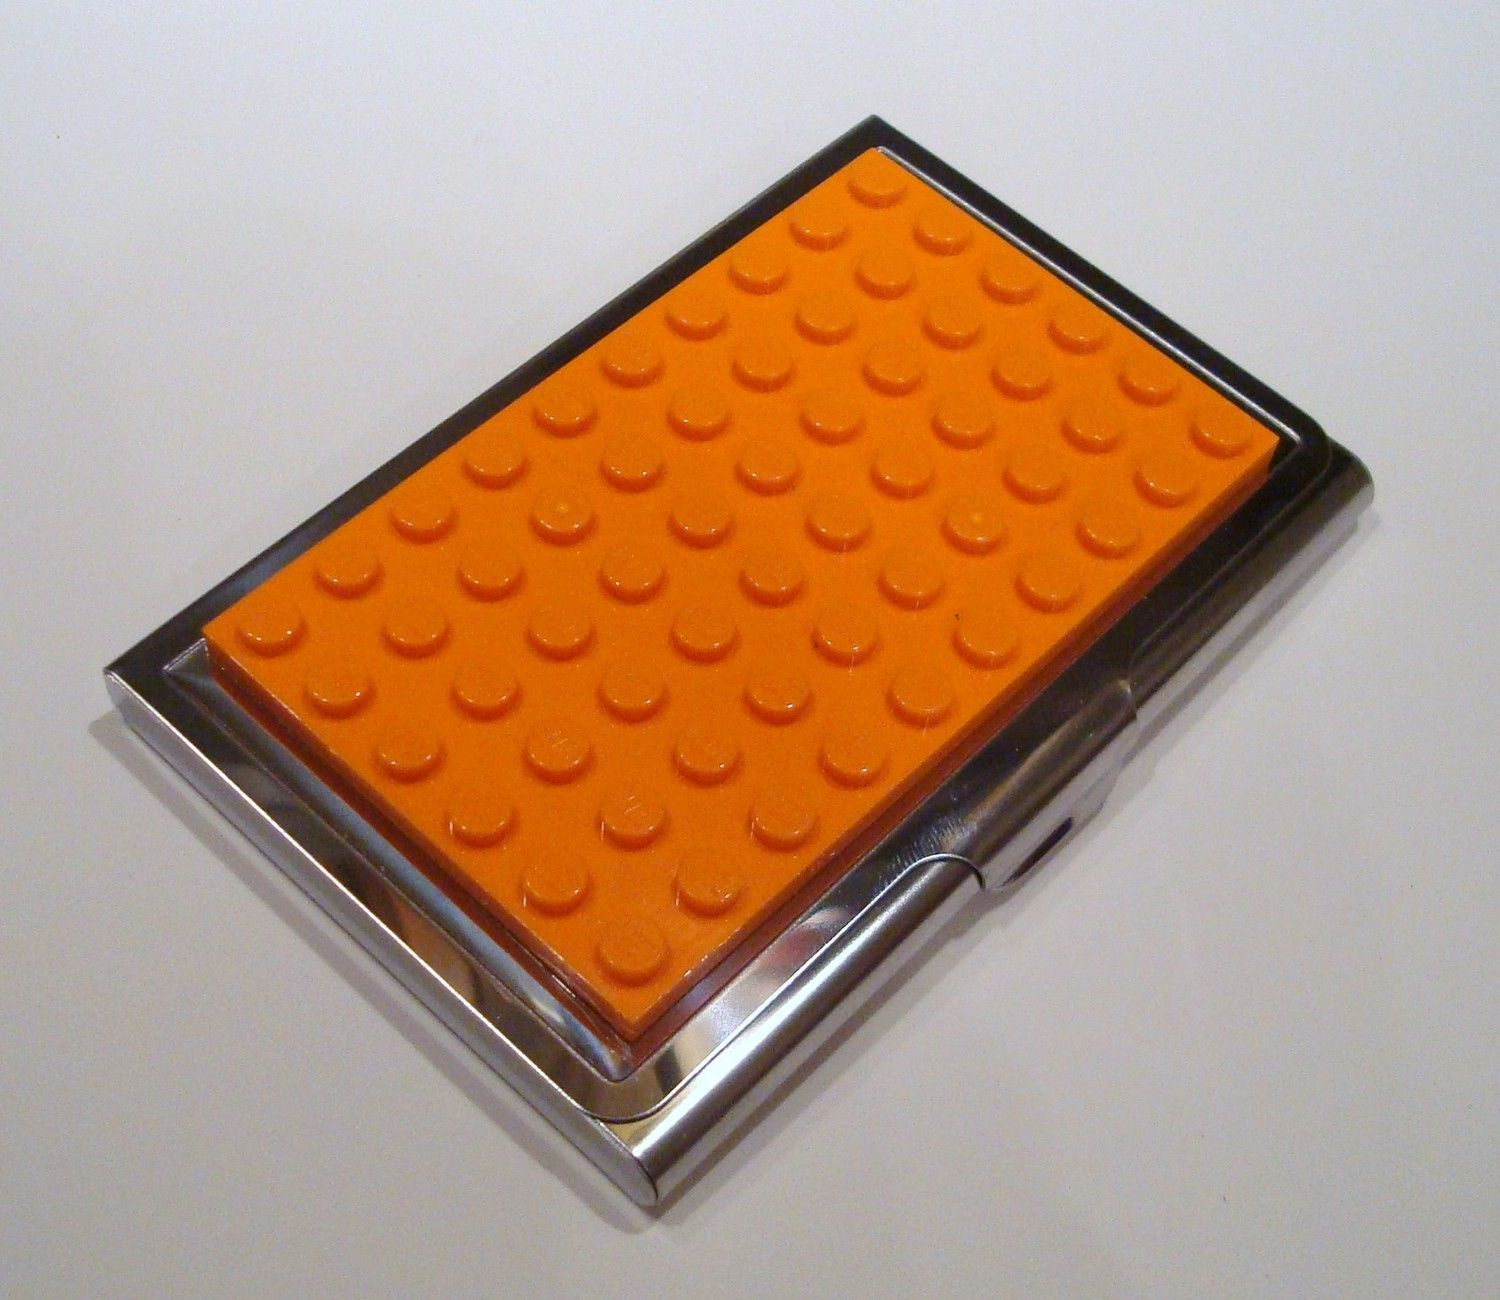 Stainless Steel Business Card Case Orange made with Lego (r) plate ...